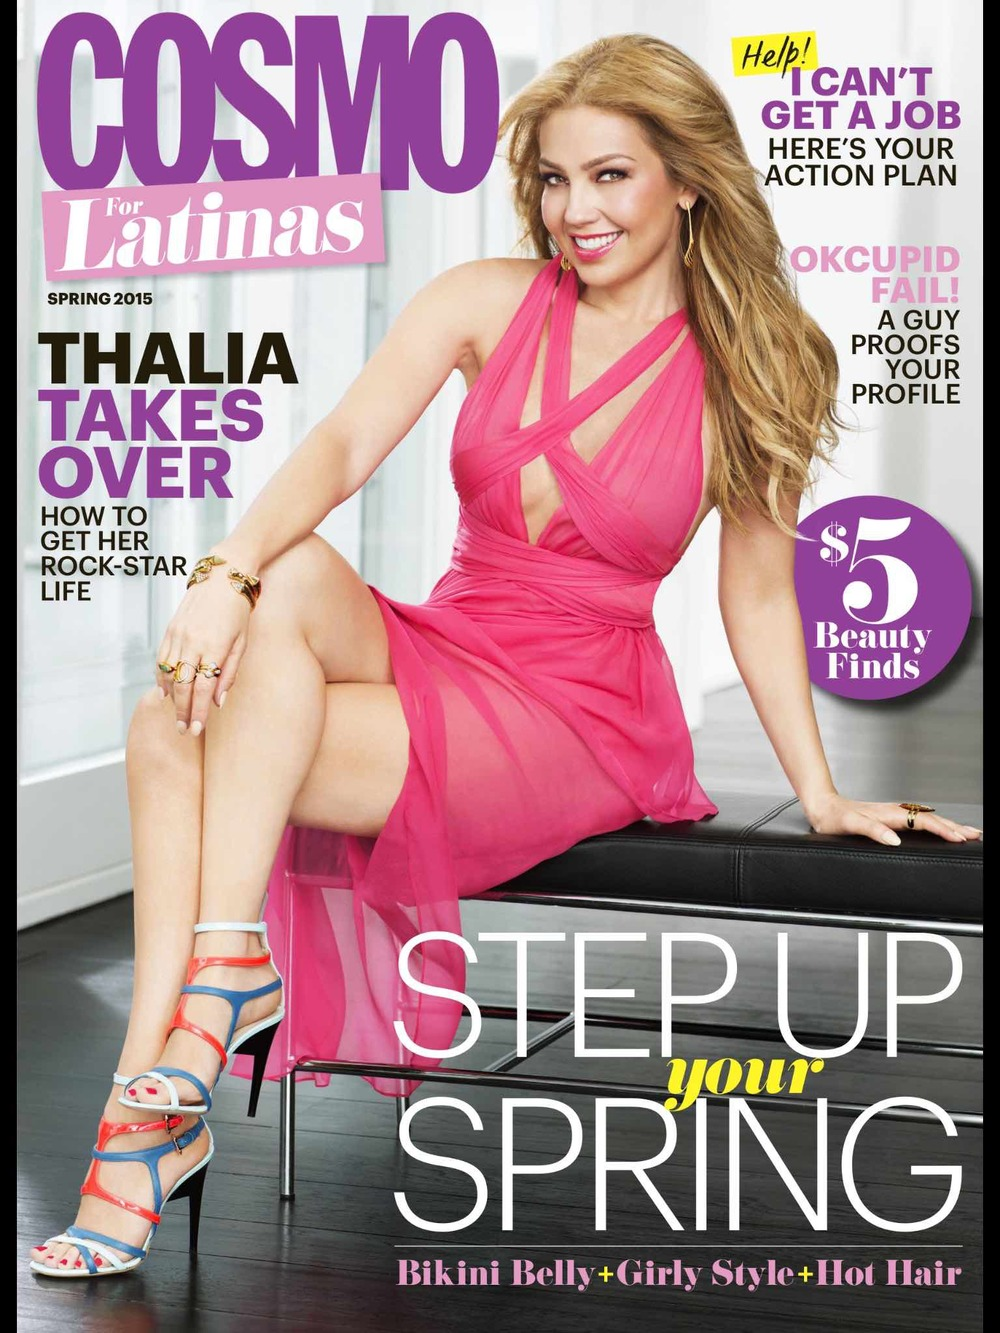 Cosmo Latina Cover-2.jpg